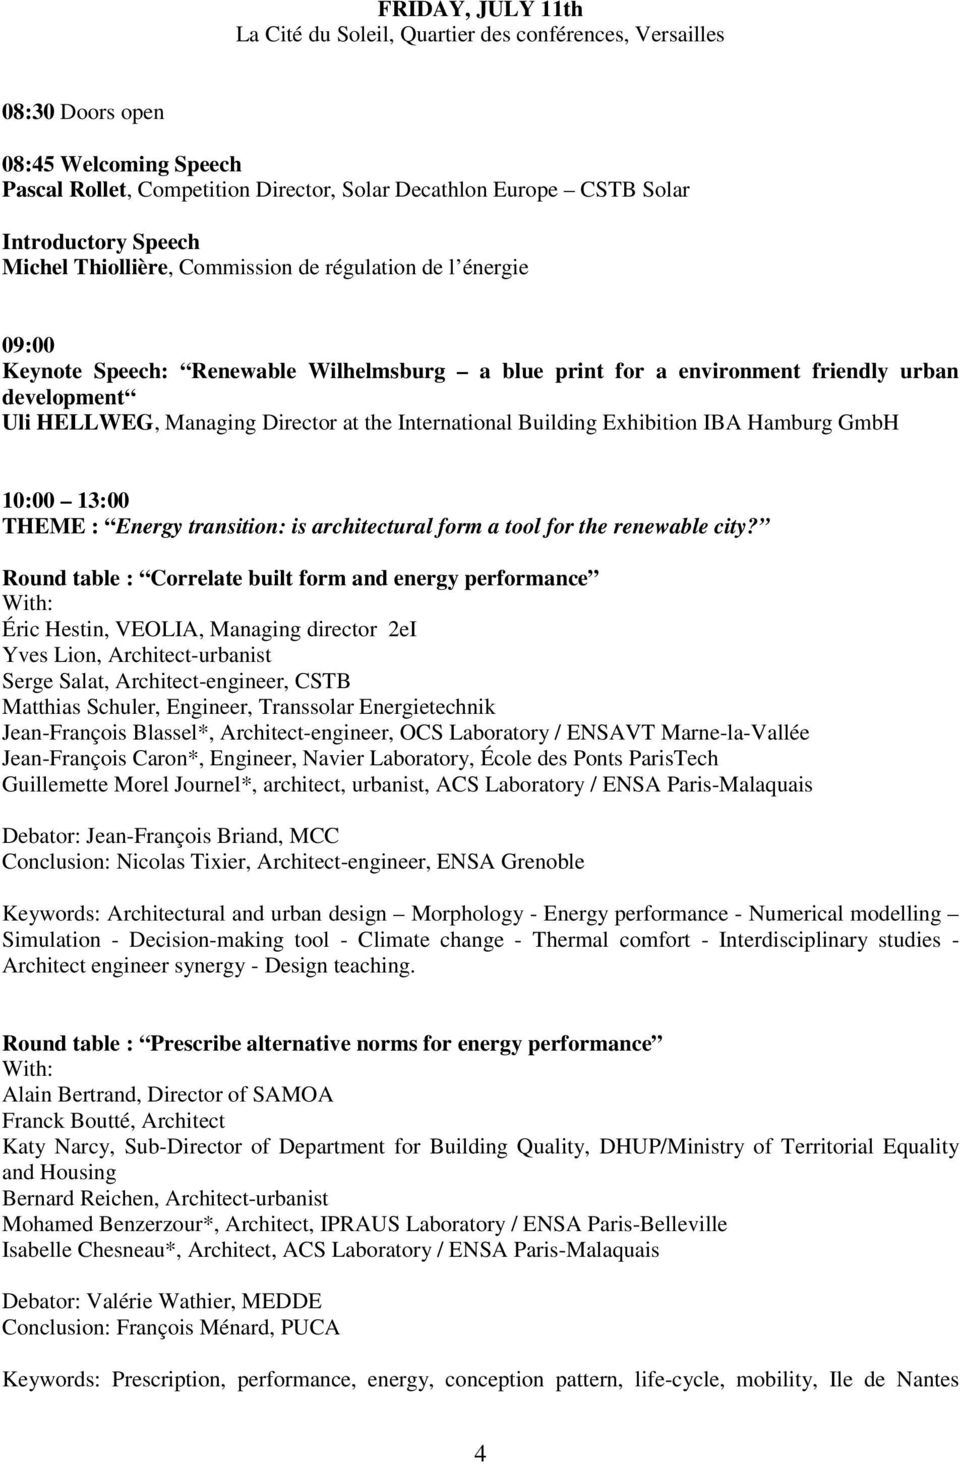 at the International Building Exhibition IBA Hamburg GmbH 10:00 13:00 THEME : Energy transition: is architectural form a tool for the renewable city?